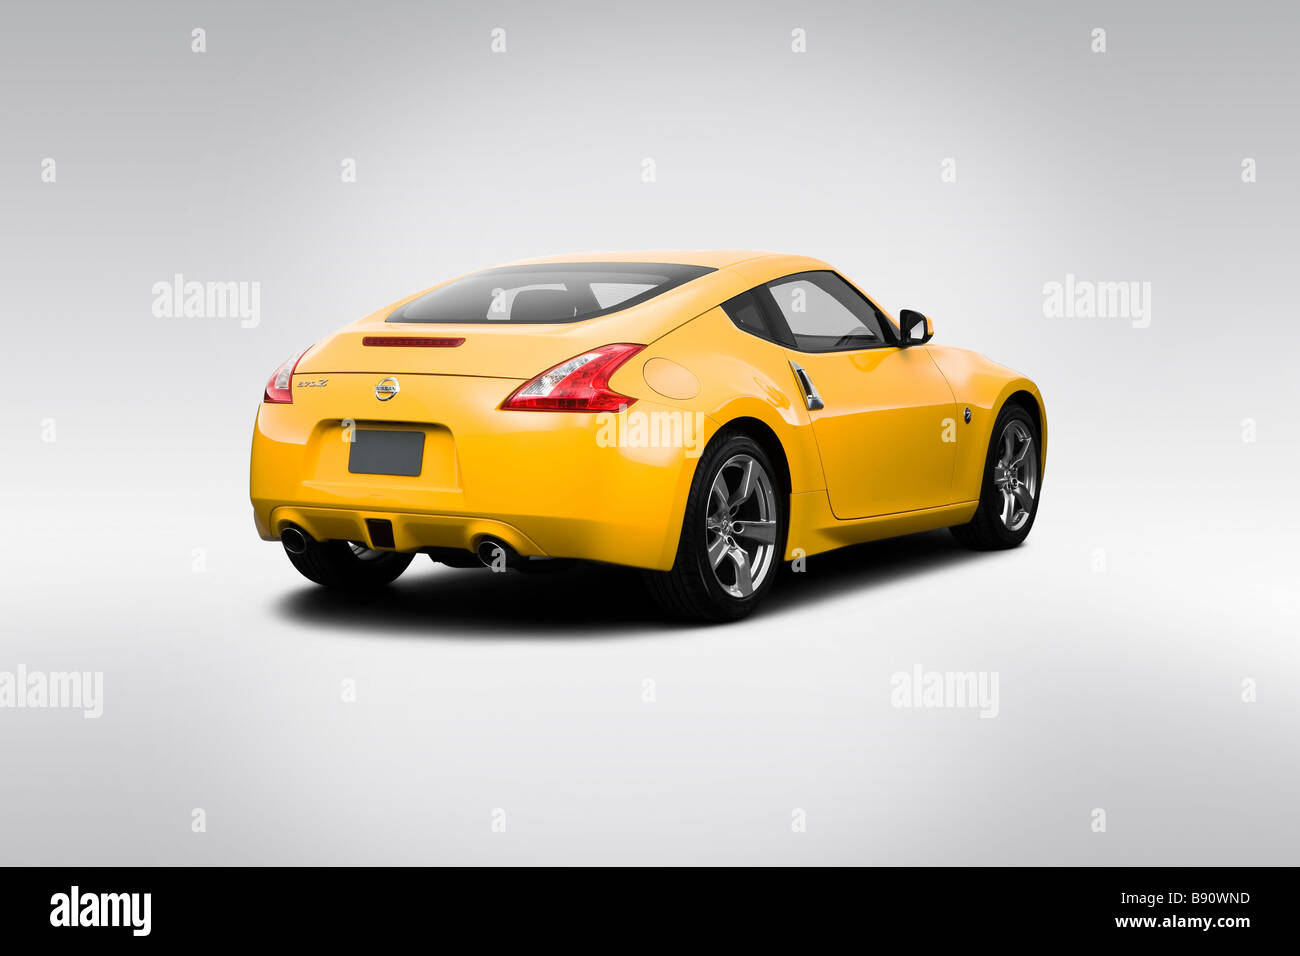 2009 Nissan 370Z In Yellow   Rear Angle View   Stock Image